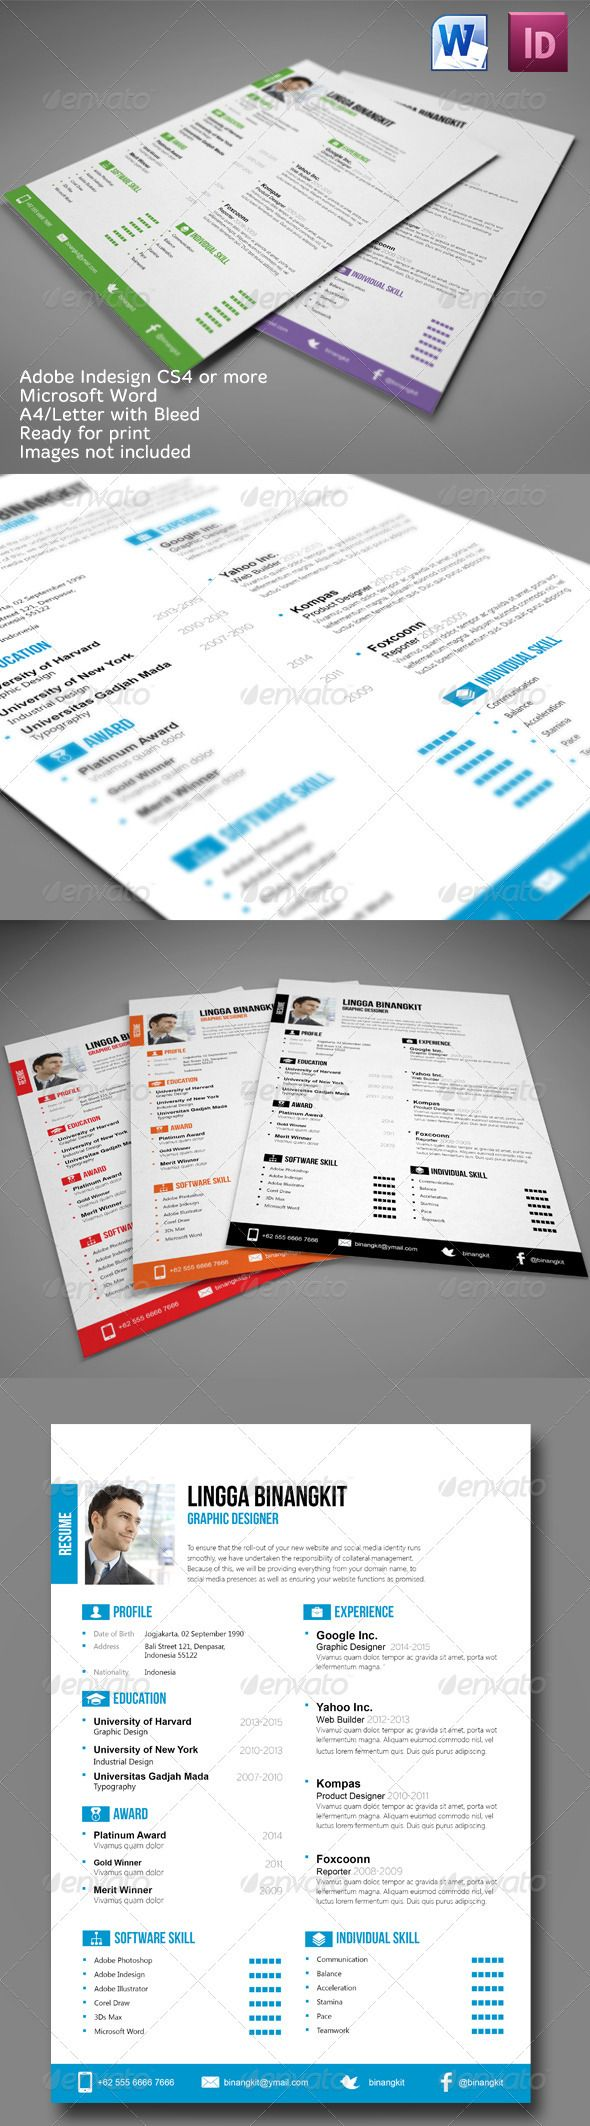 best images about resume s infographic 17 best images about resume s infographic resume creative resume and cover letter template